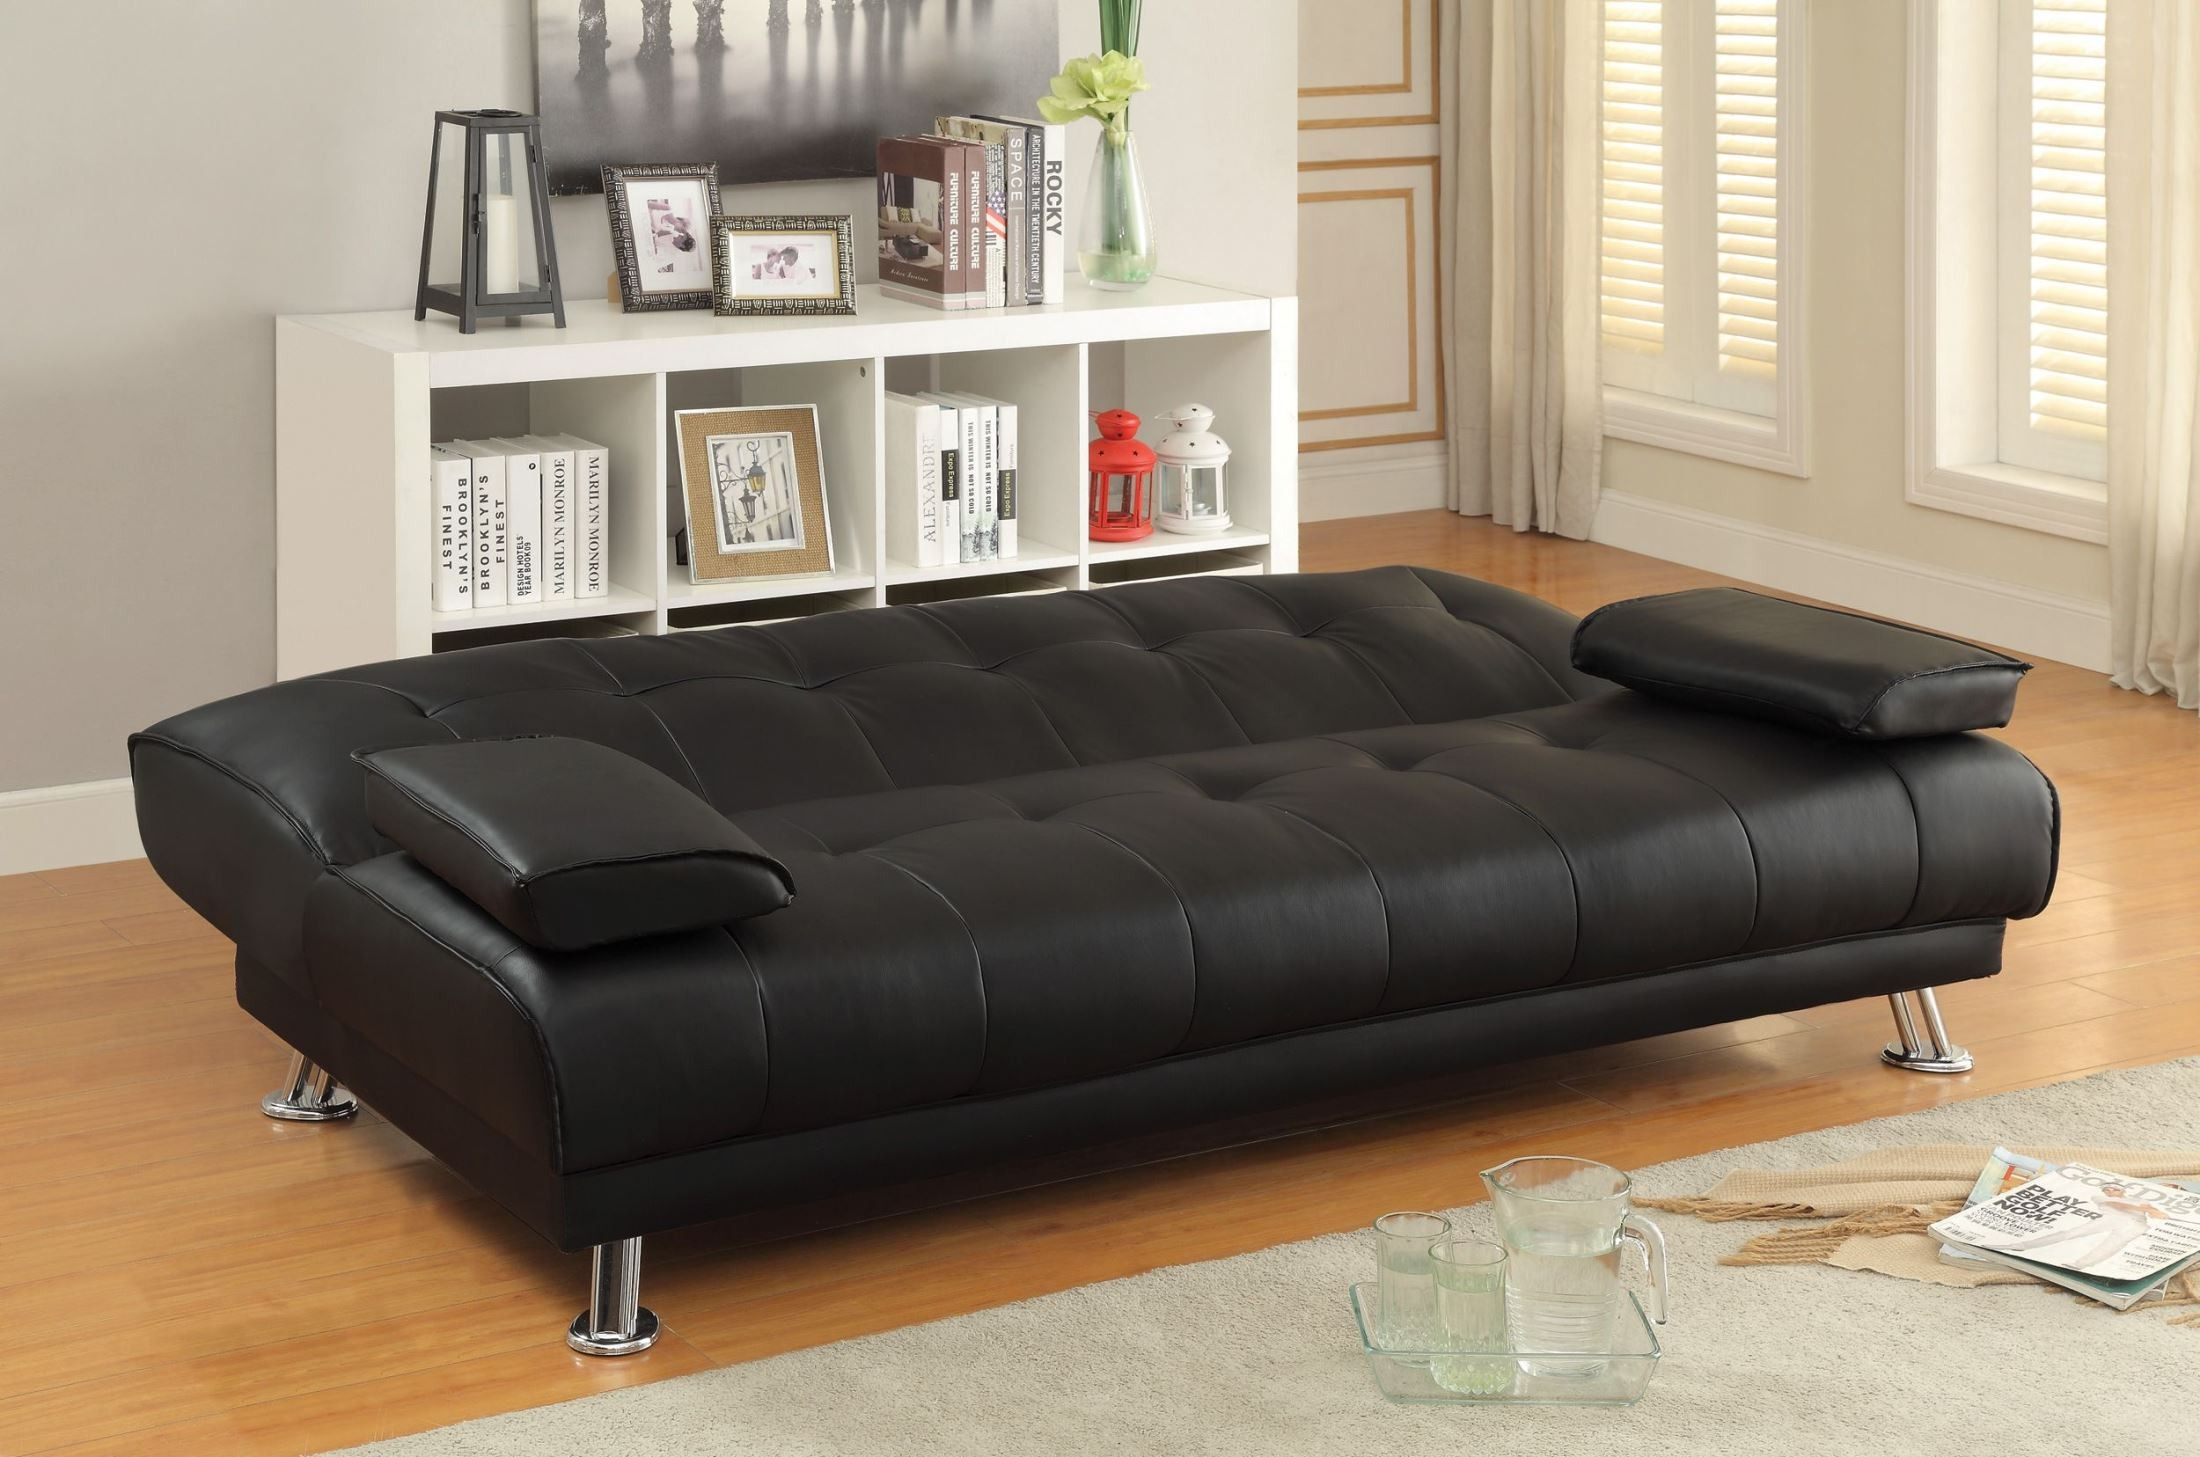 coaster futon sofa bed with removable armrests review cinema a london braxton black from 300205 coleman